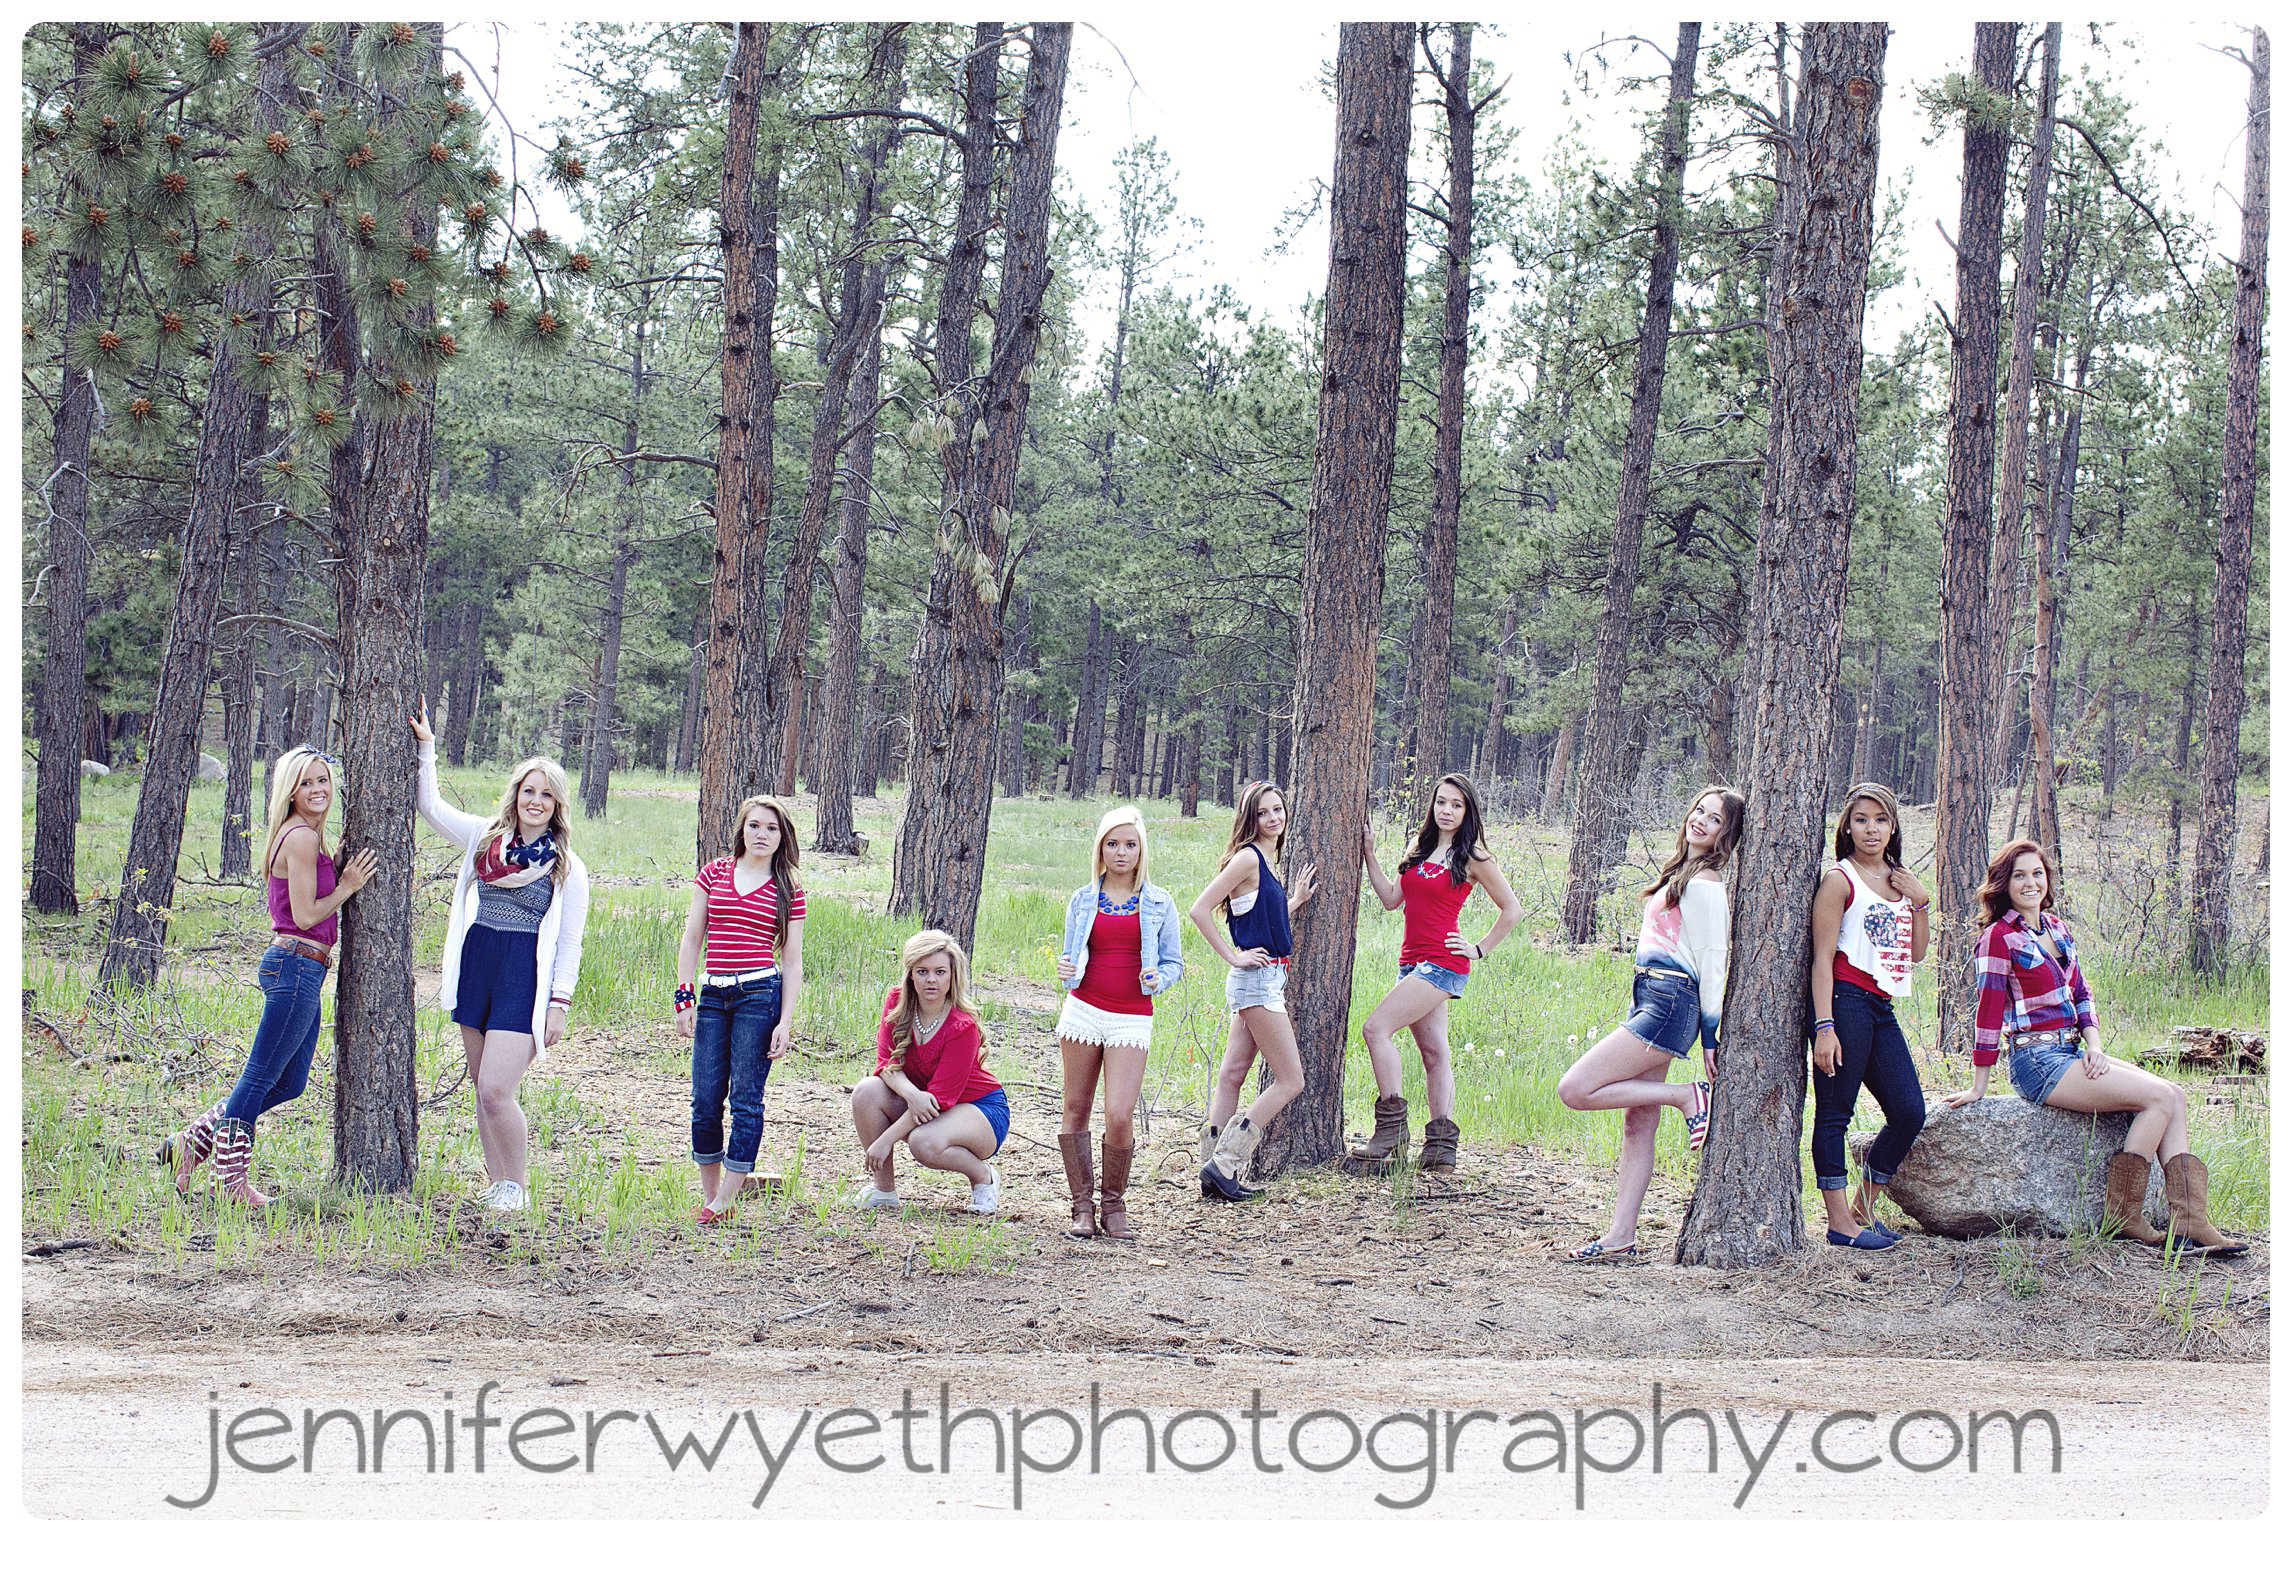 ten girls pose in forest showing sass wearing red white and blue